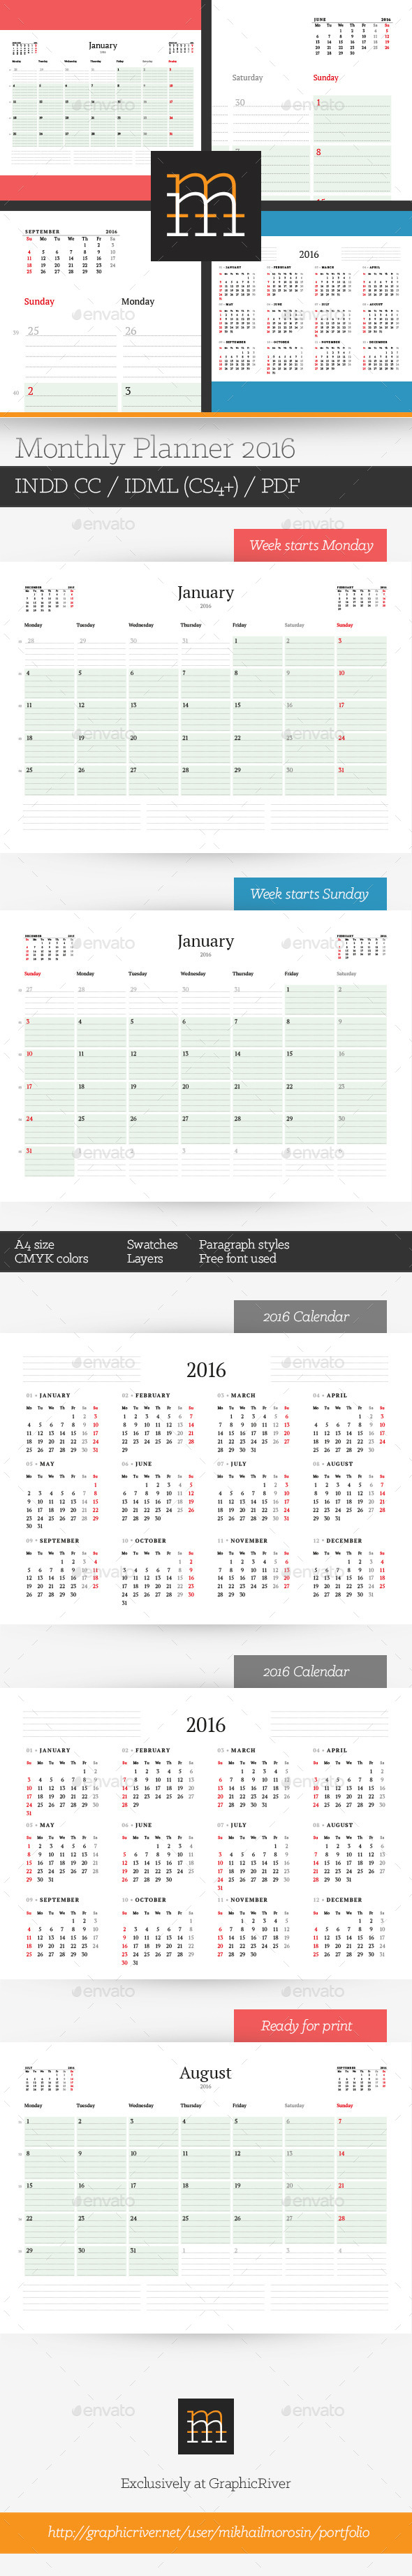 GraphicRiver Monthly Planner 2016 11648440